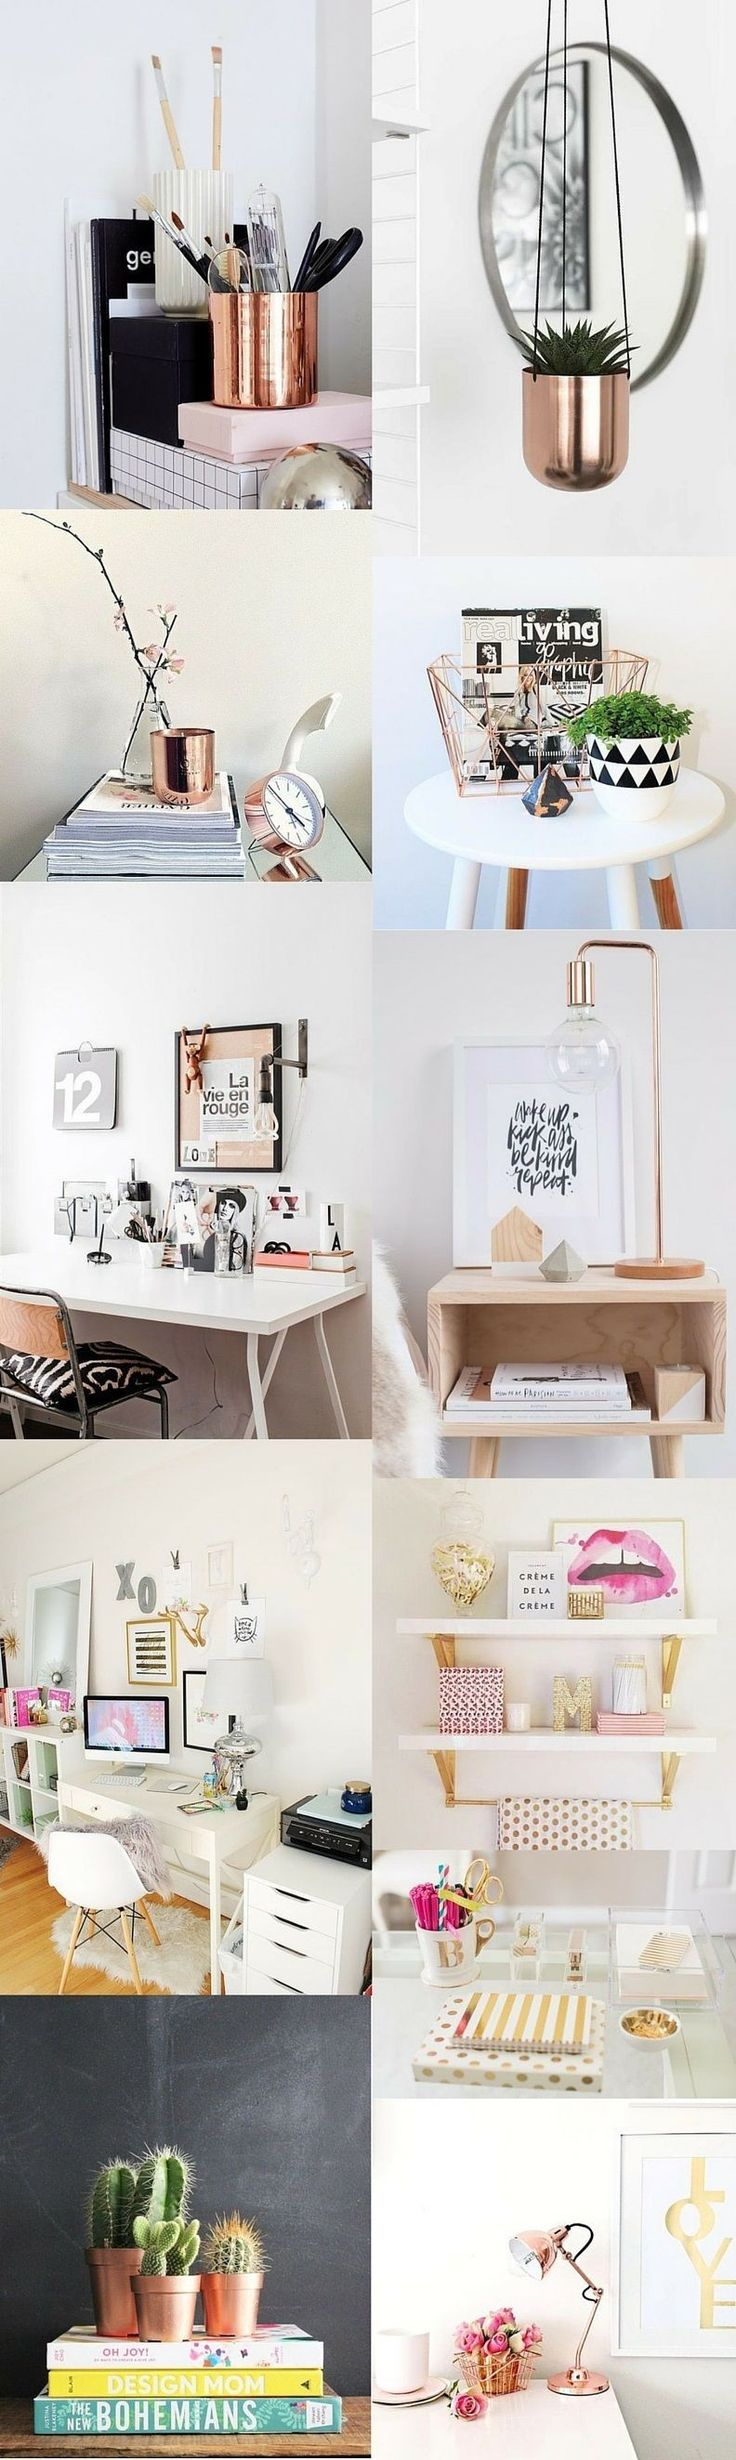 Copper Decor Modern Apartments Pink Roses Snapchat